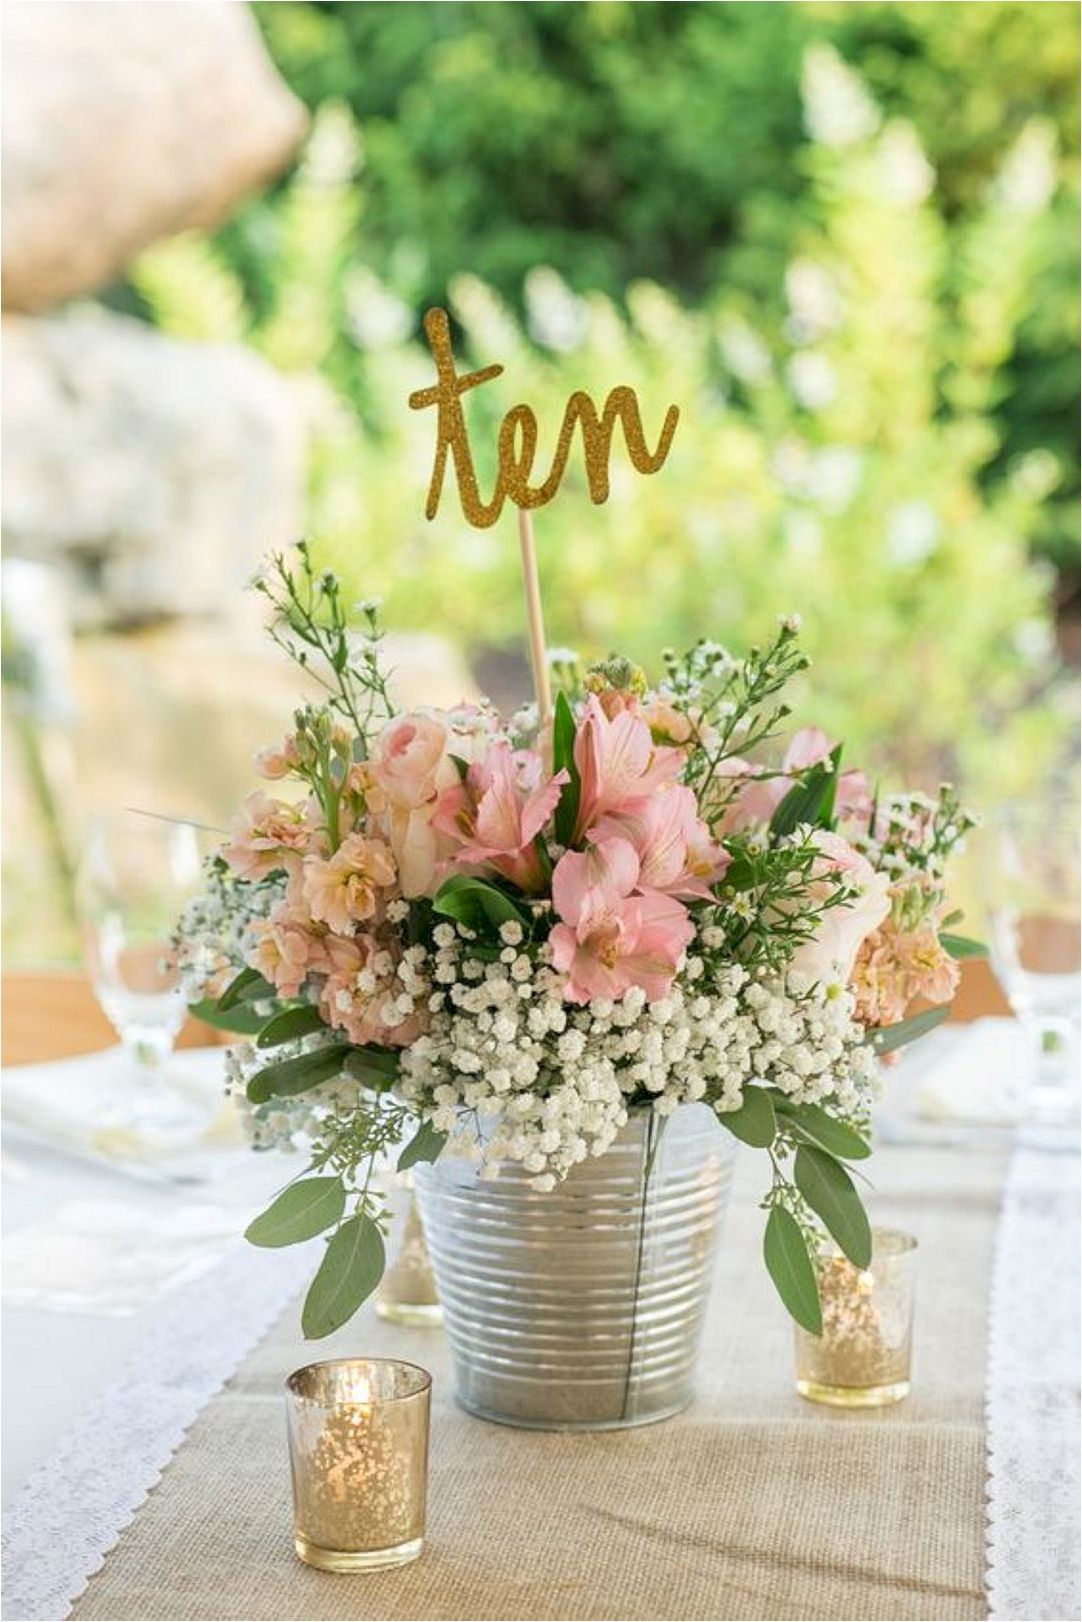 Cheap wedding centerpieces ideas 2017 wedding for Small table decorations for weddings